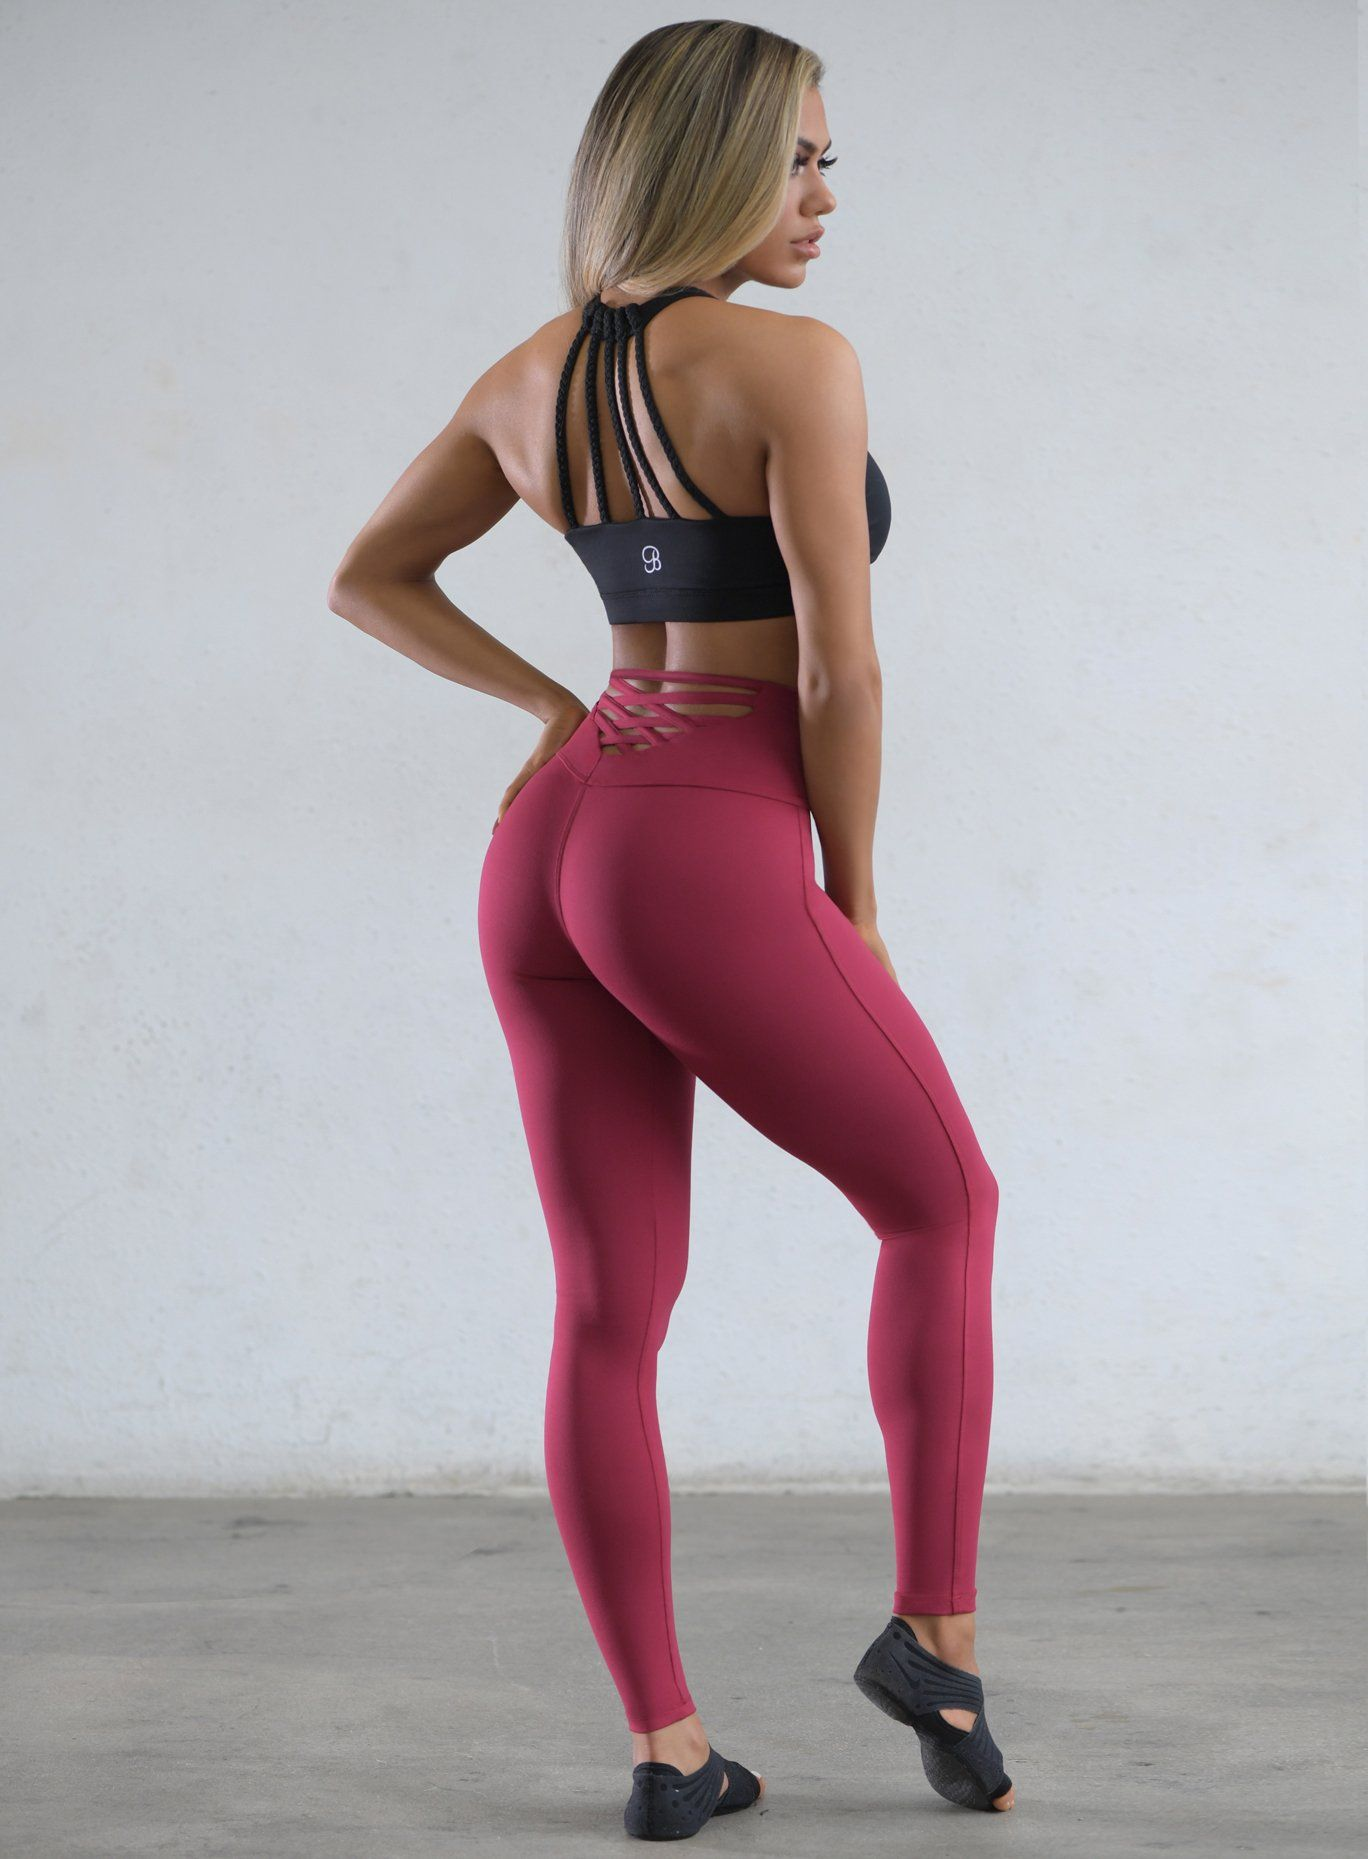 f93efc5ec8 Sexy Back Leggings in 2019 | fitness/inspiration | Sexy, Sexy ...